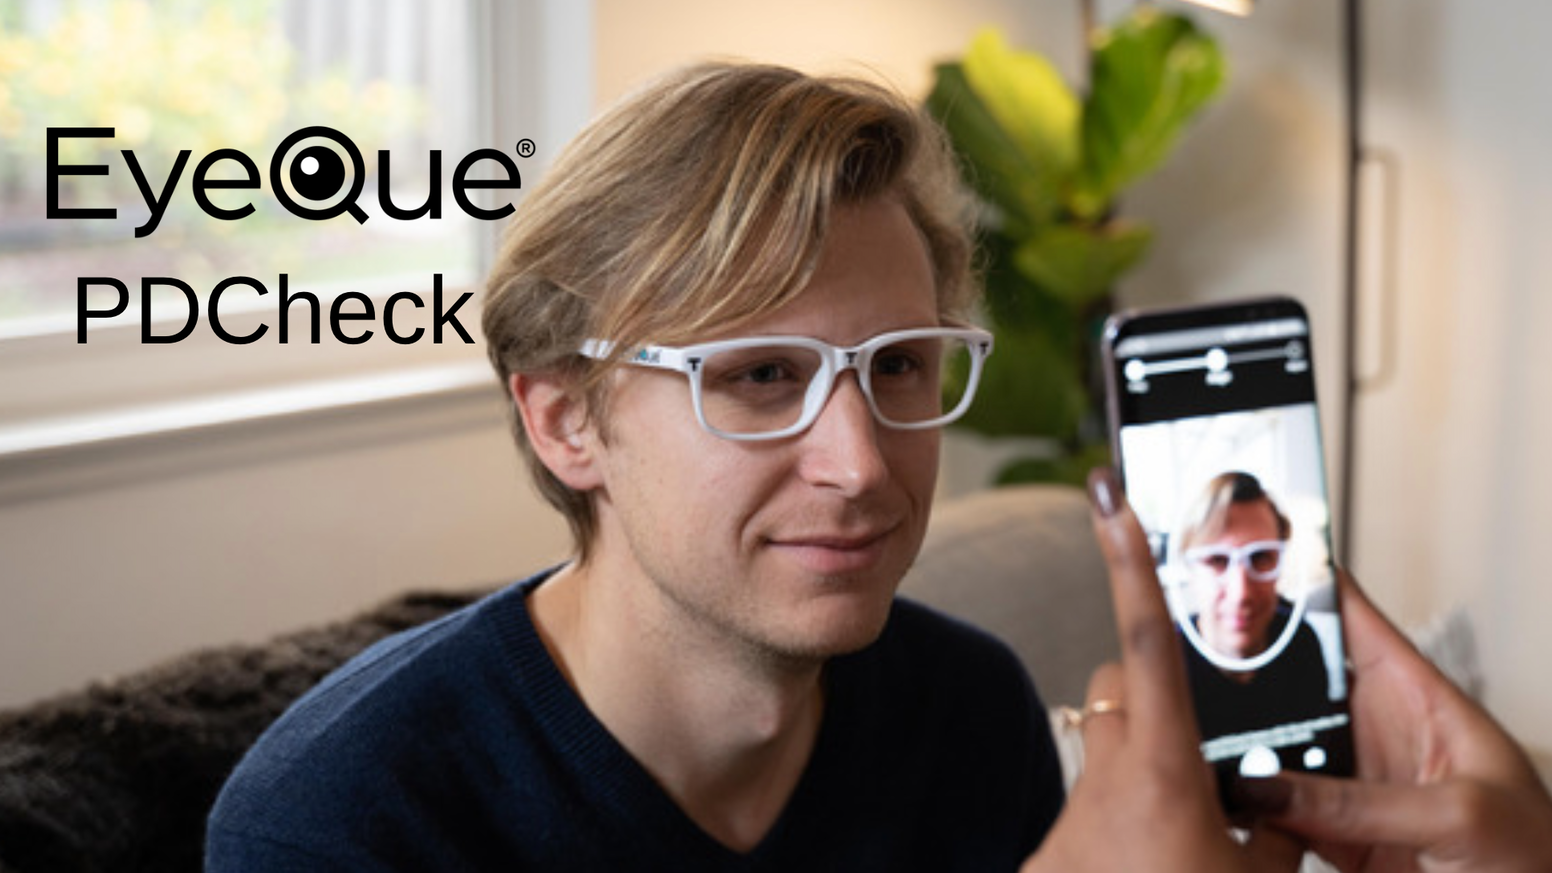 Get your pupillary distance (PD) in a matter of seconds. Extremely accurate results using our patent-pending frames & smartphone app.